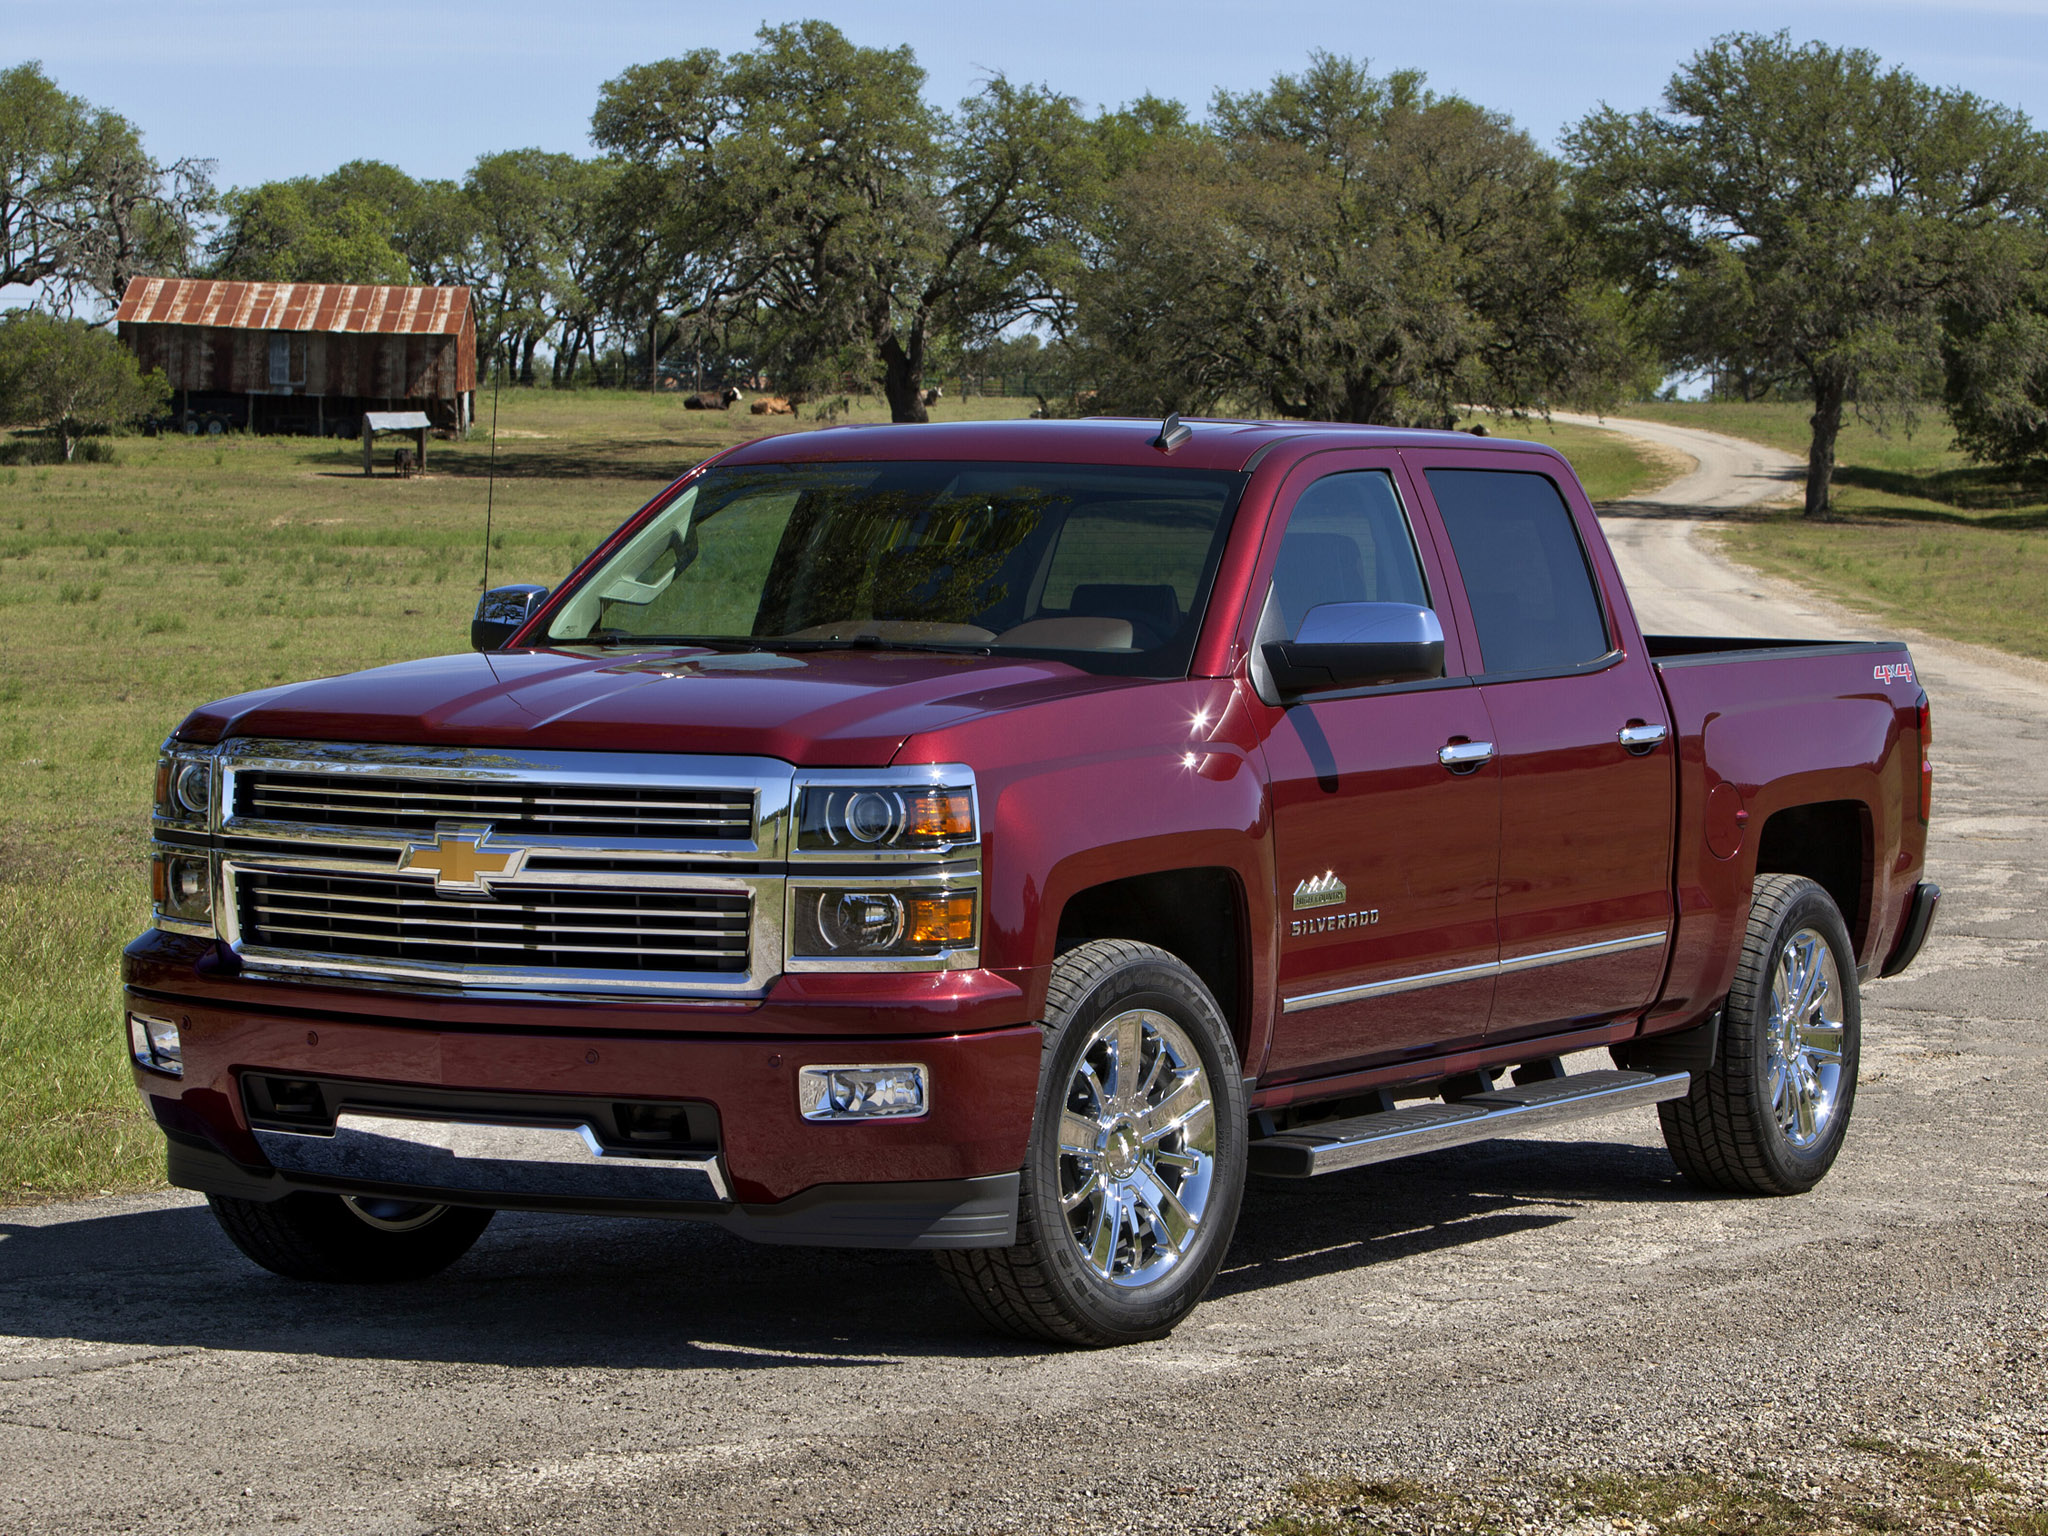 2014 Chevrolet Silverado High Country truck 4x4 wallpaper background 2048x1536